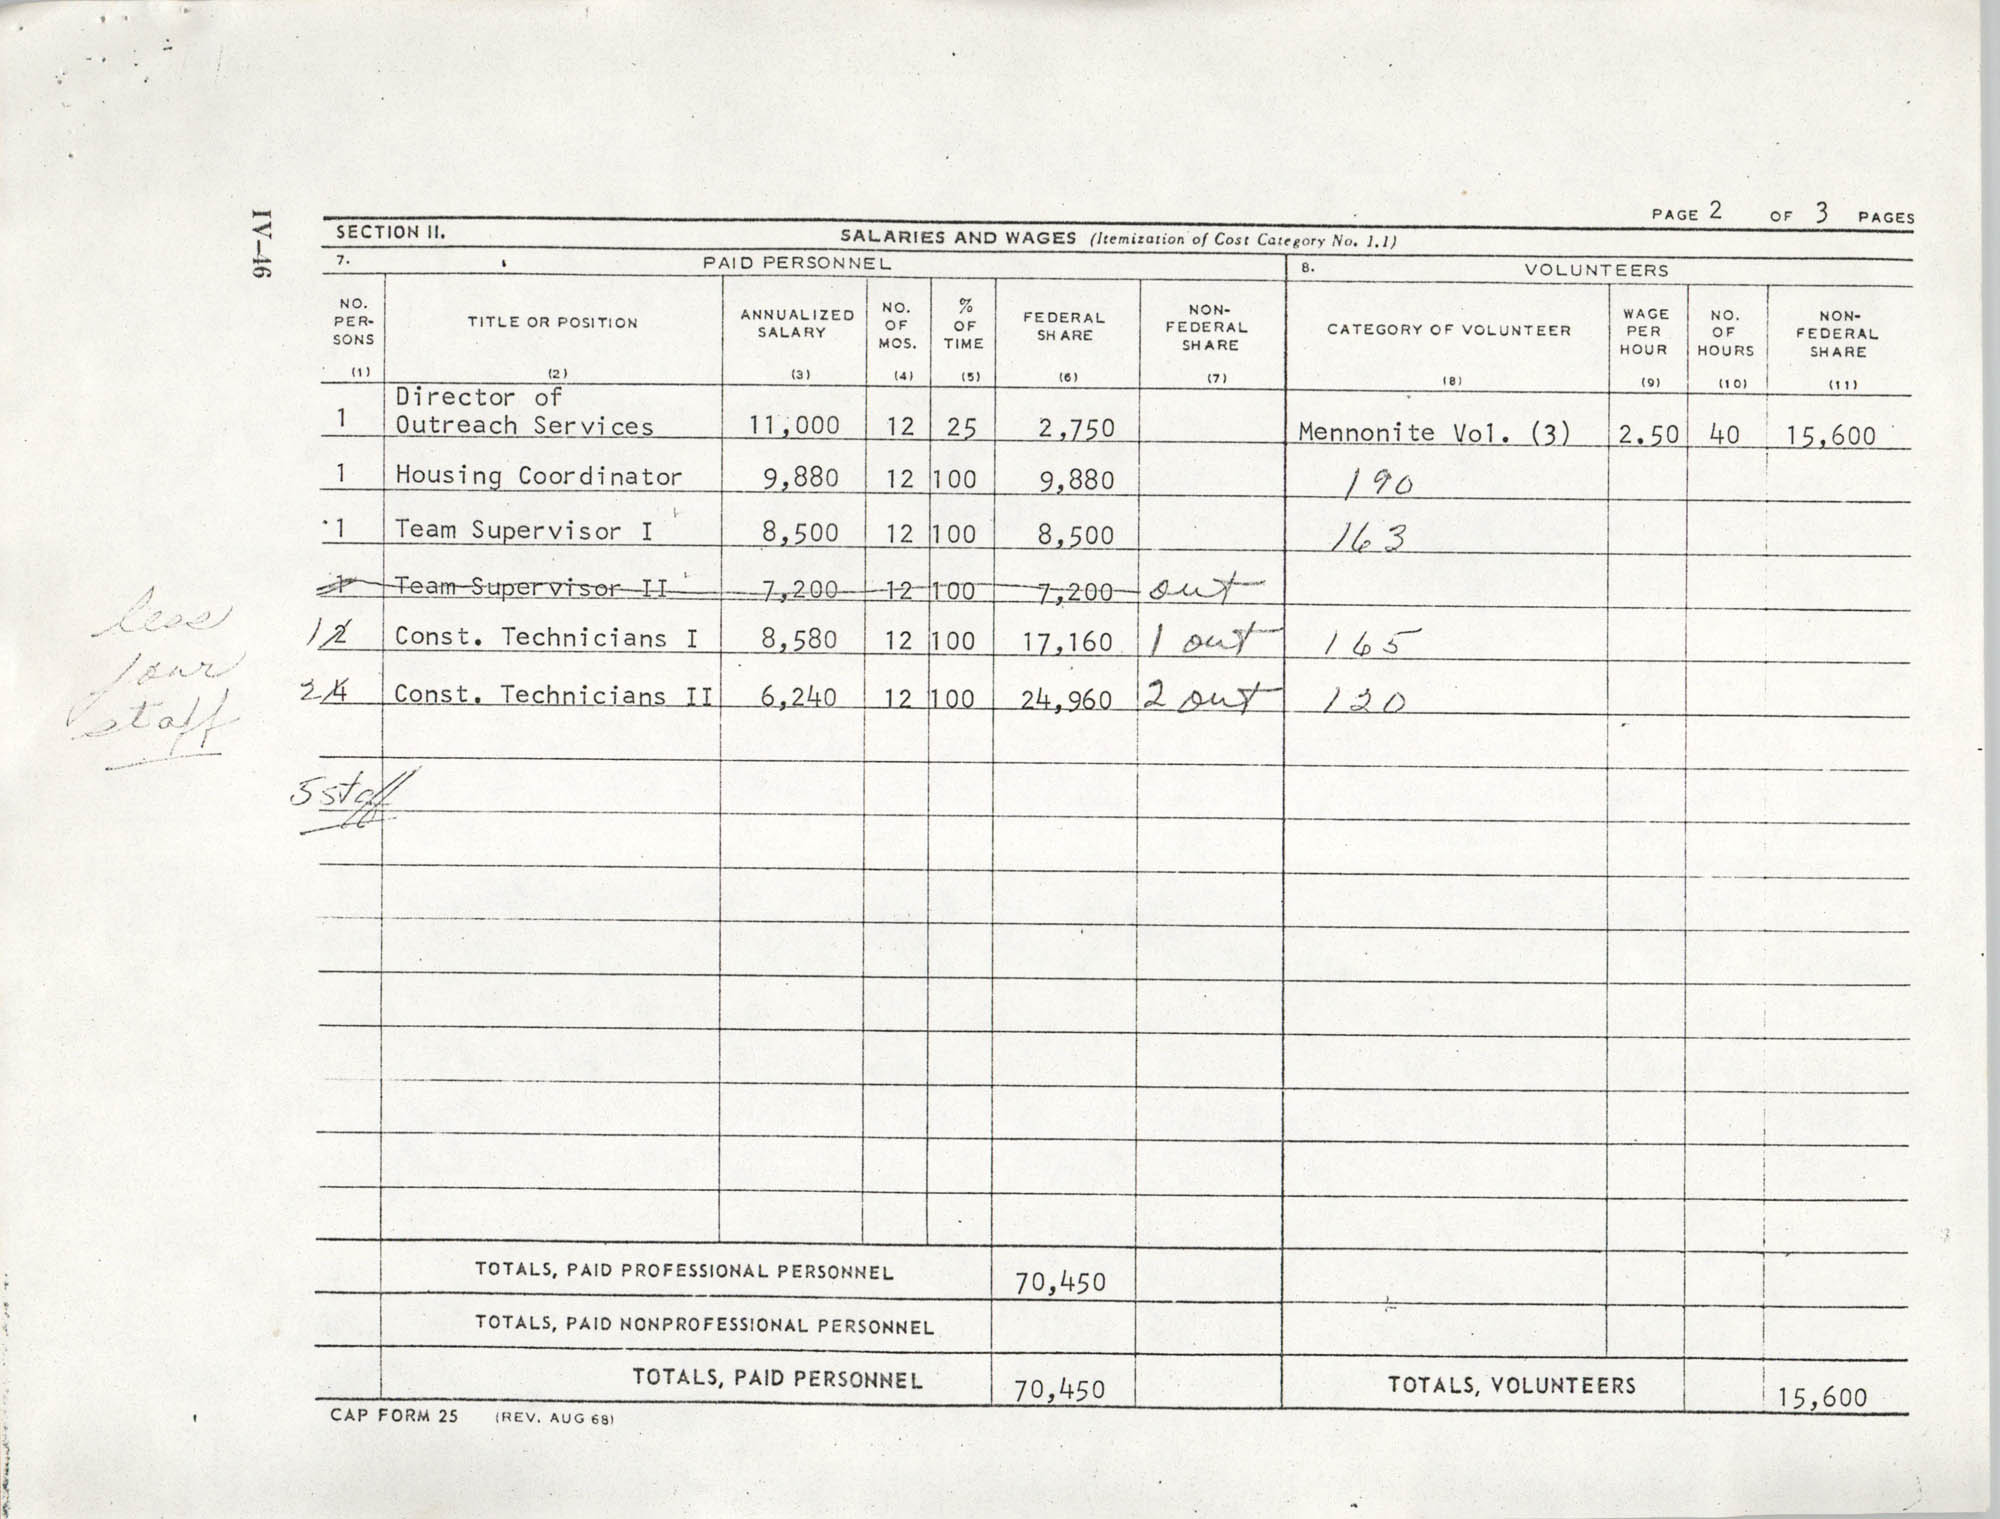 Migrant Self-Help Housing, Program Account Budget Forms, Page 2